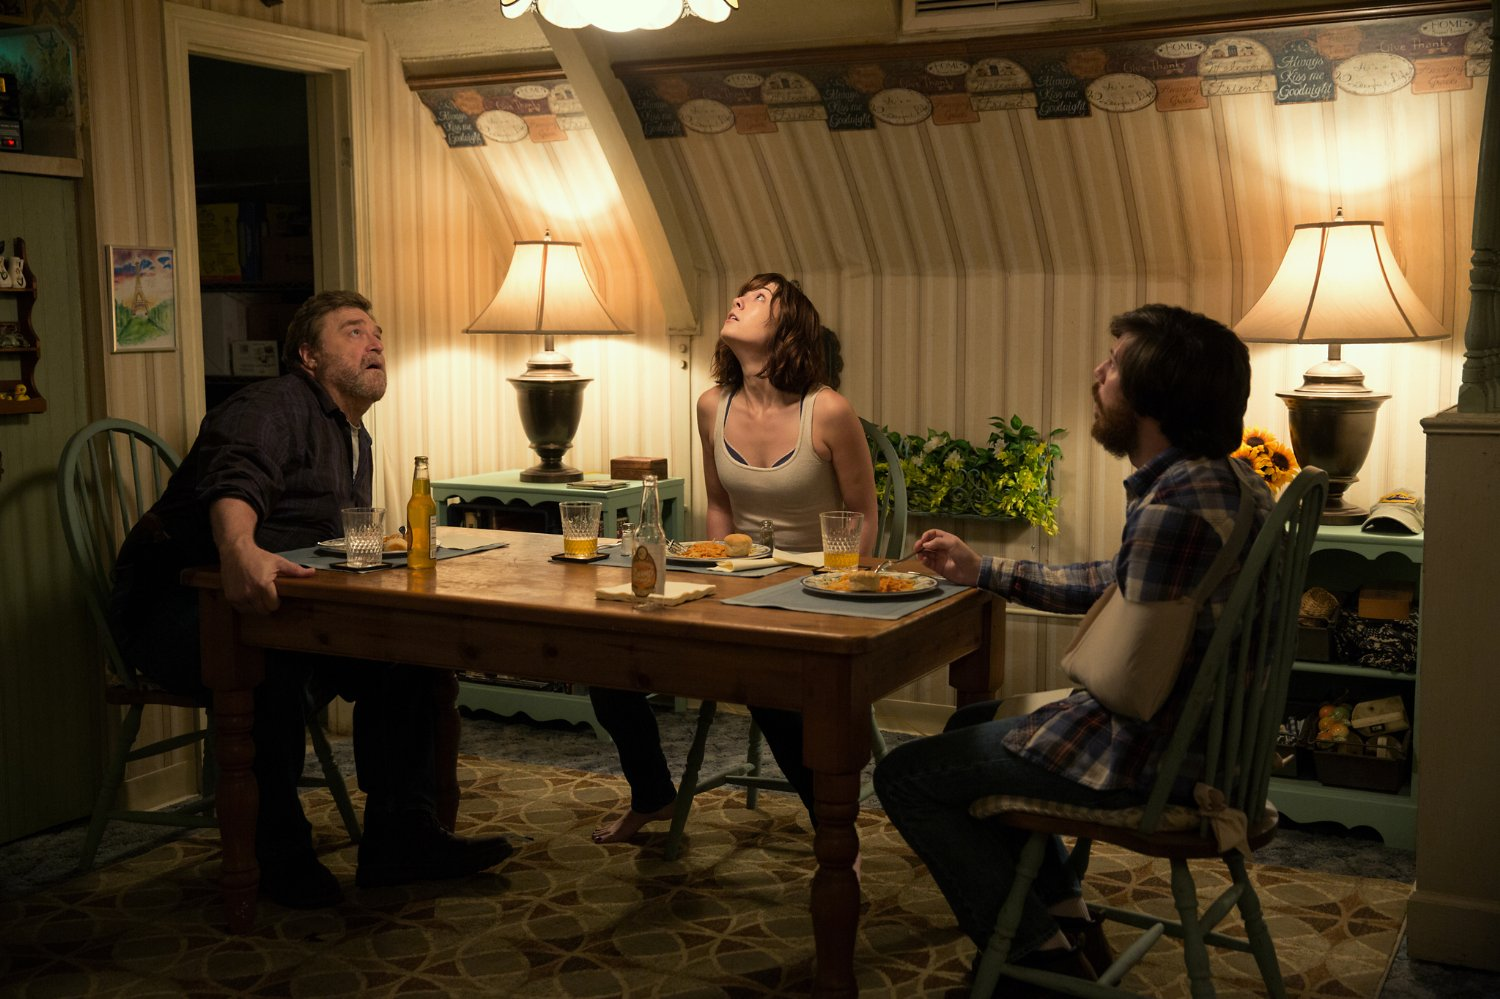 John Goodman, Mary Elizabeth Winstead, and John Gallagher Jr., in 10 Cloverfield Lane (2016)